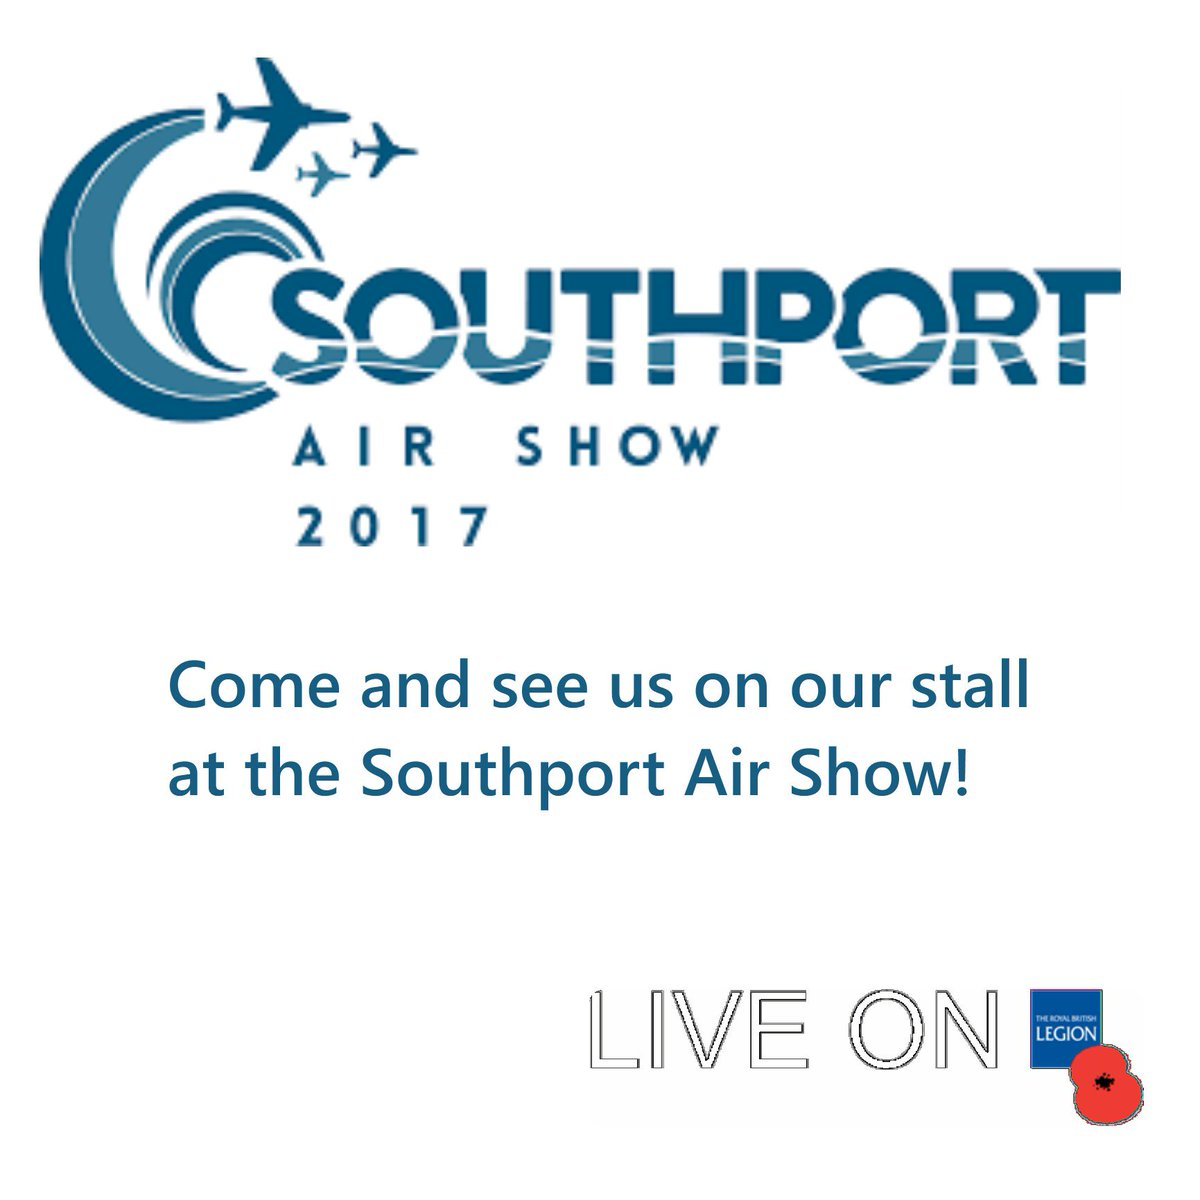 Come along and see us at our stall today at the Southport Air Show #royalbritishlegion #southportairshow #airshow #insouthport #bynghouse <br>http://pic.twitter.com/IBkkbuaT2f